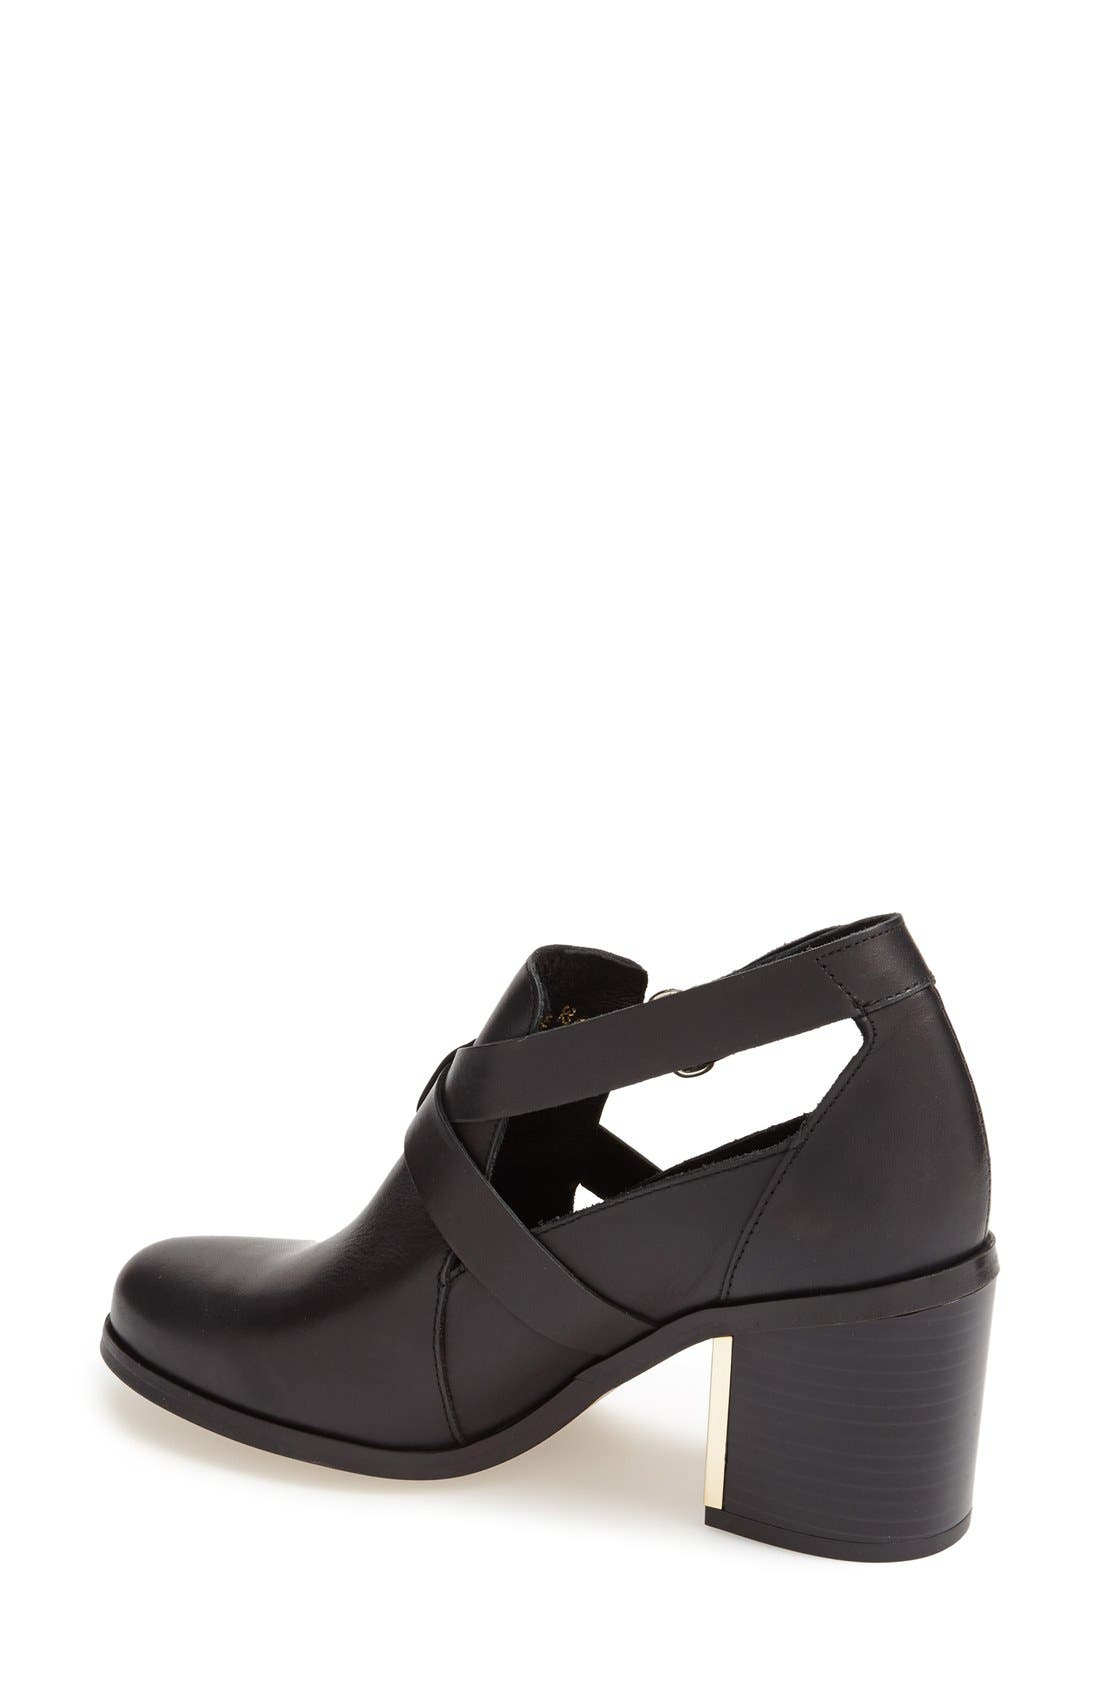 TOPSHOP,                             'Mirror' Crisscross Strap Leather Ankle Boot,                             Alternate thumbnail 4, color,                             001